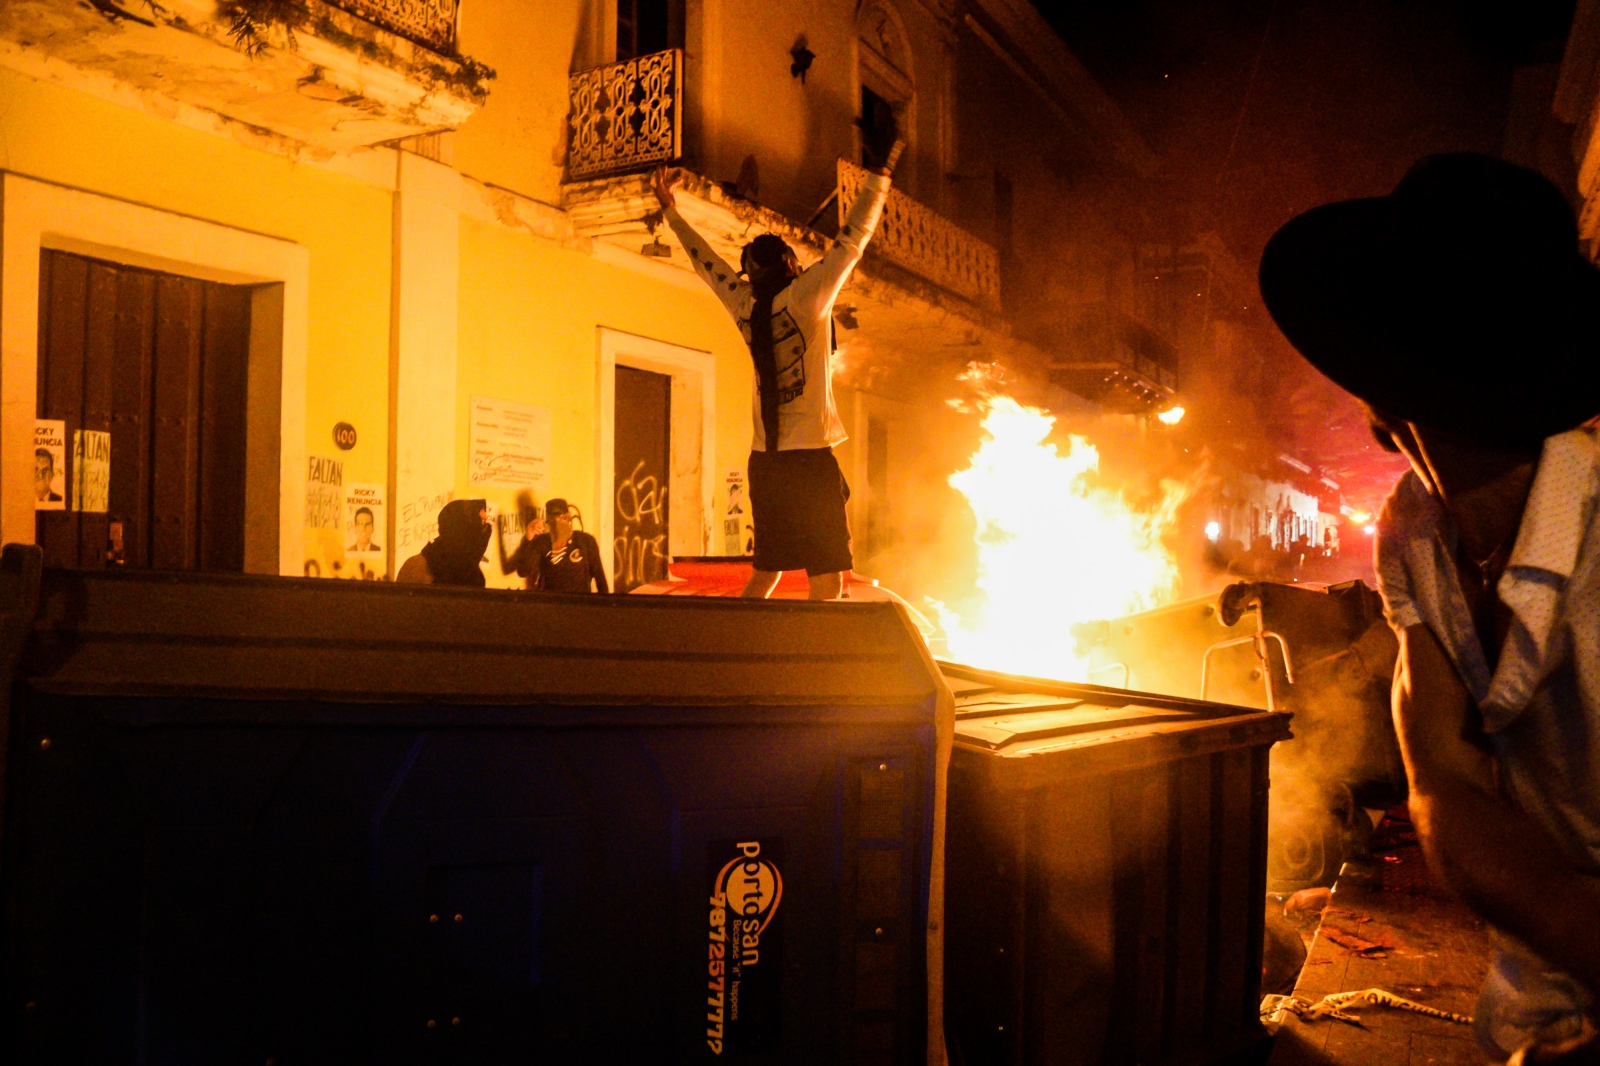 Demonstrators clash with police during the protests calling for the resignation of Governor of Puerto Rico, Ricardo Rosselló. Shot while on assignment for Bloomberg on July 15, 2019.